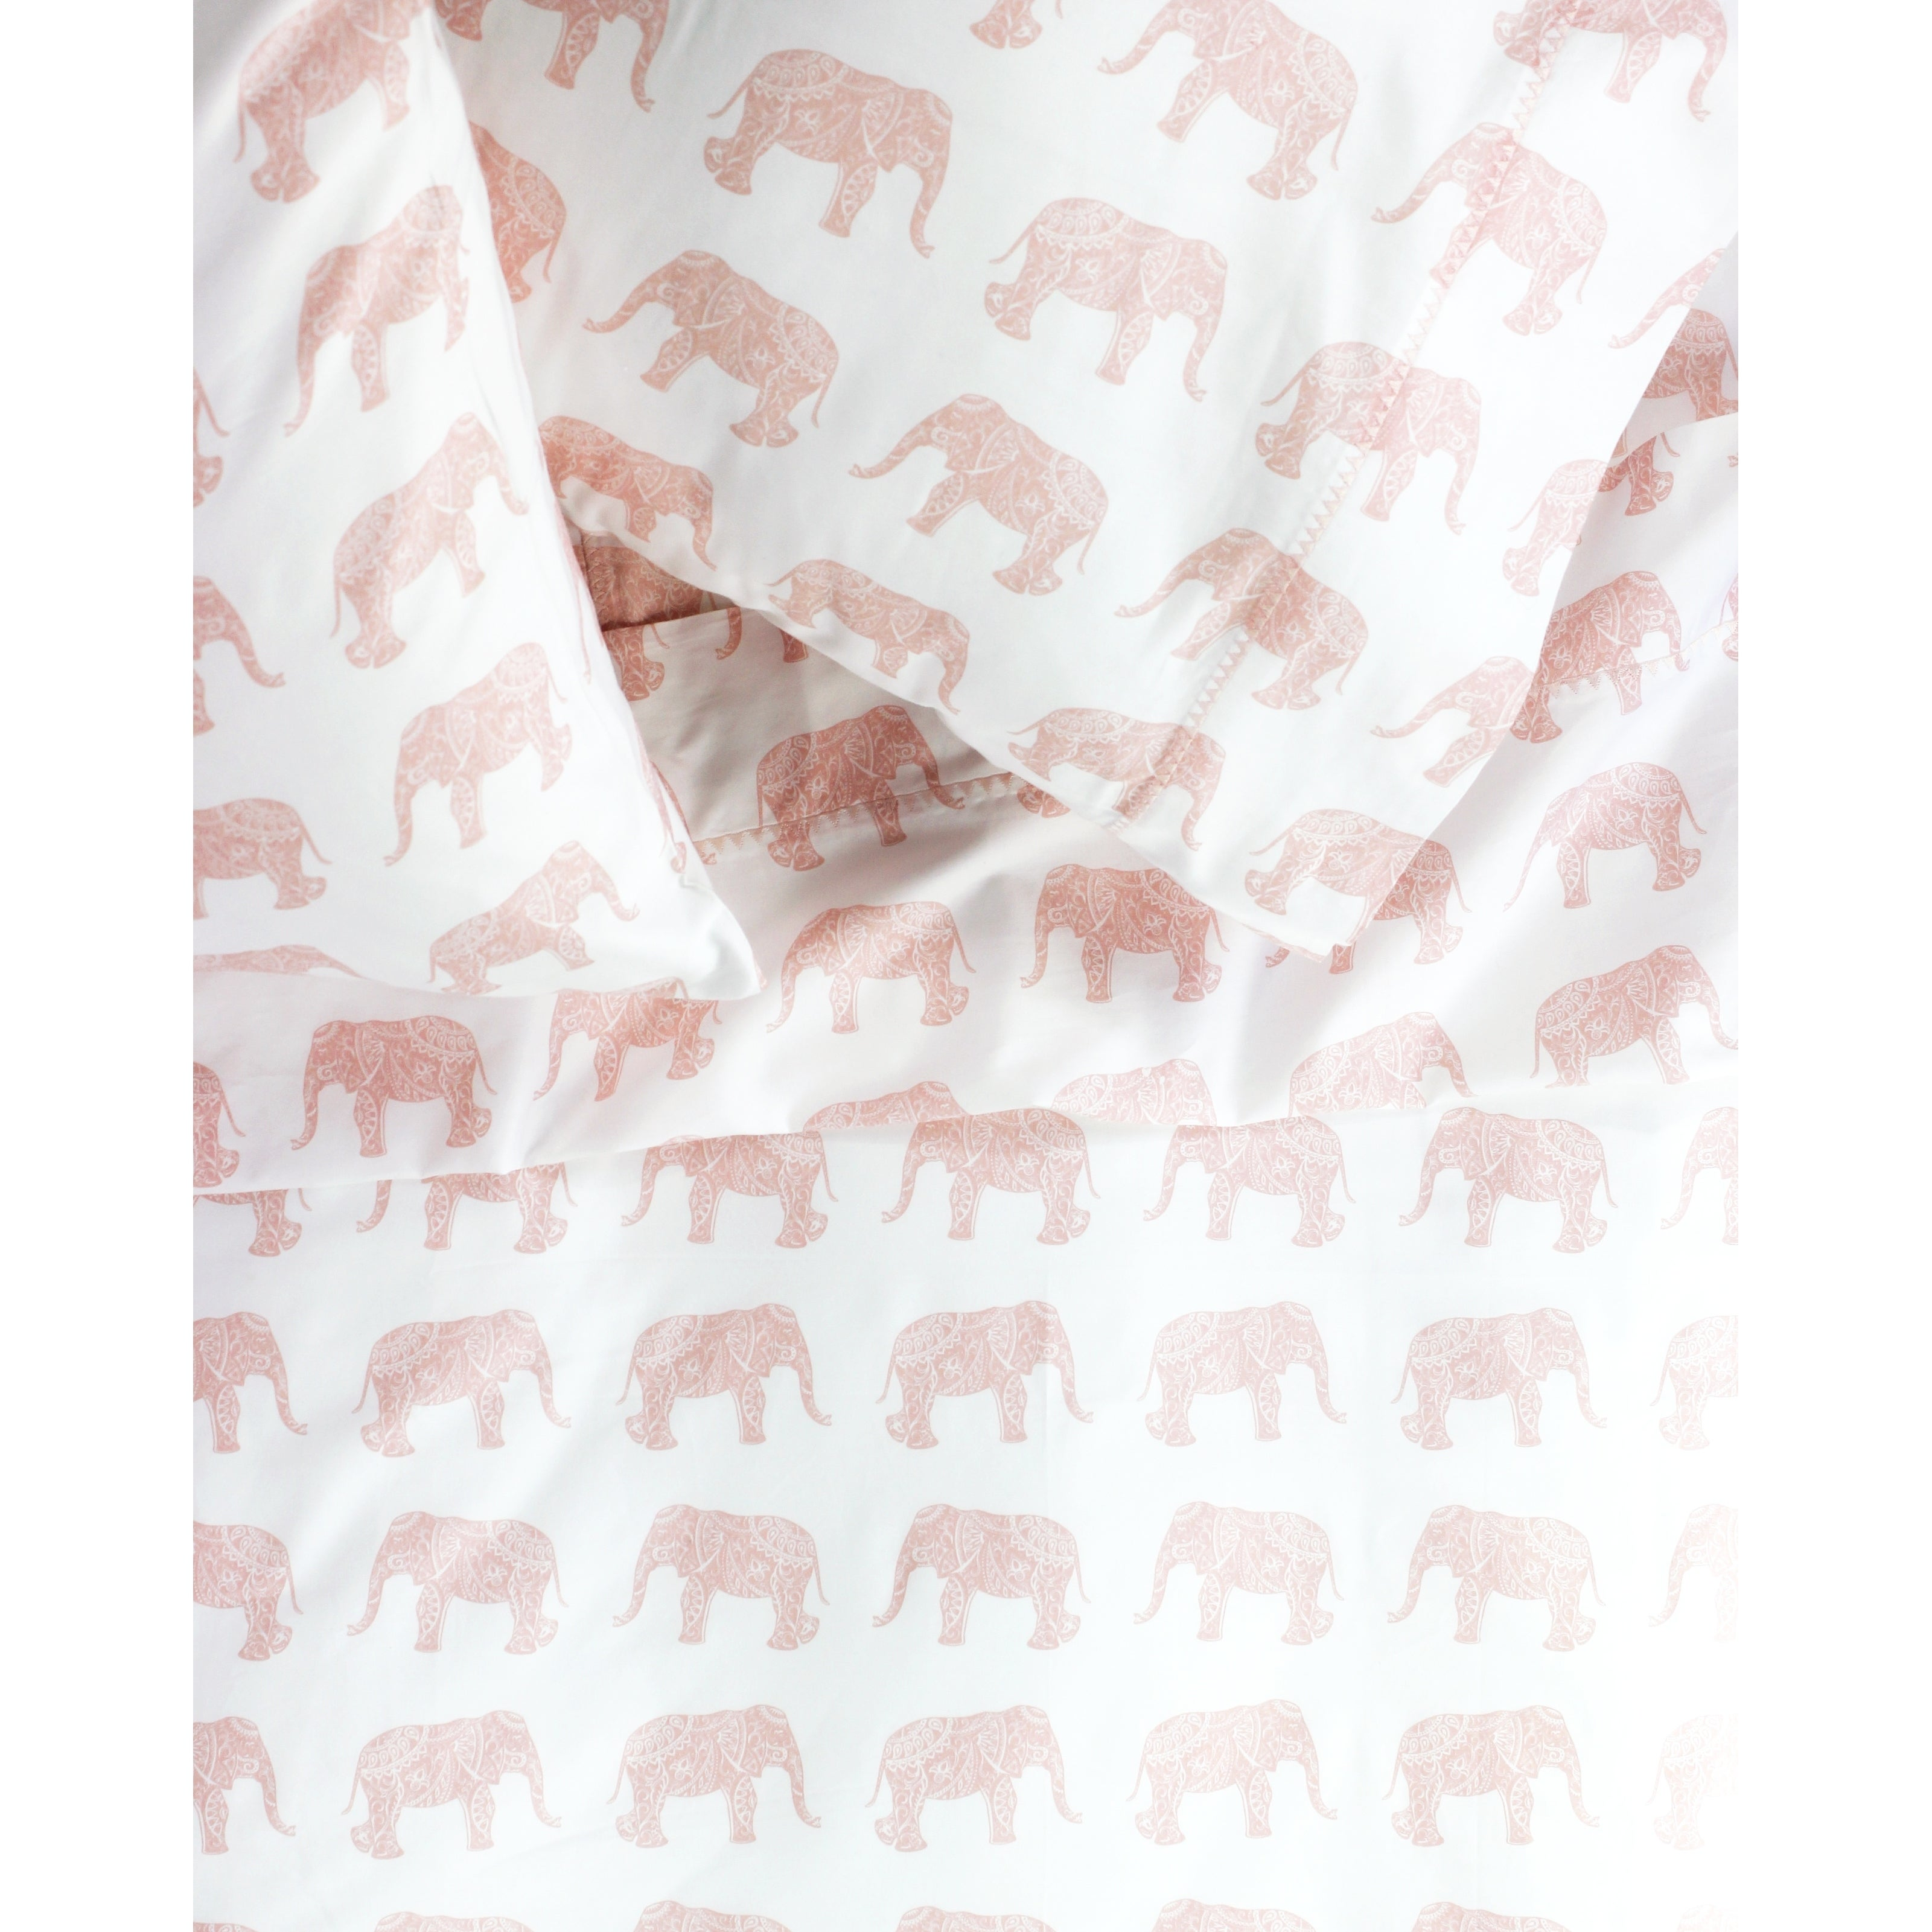 Printed Design Cotton Collection 400 Thread Count Pink Elephants Embroidered Bed Sheet Set On Sale Overstock 18112810 King 4 Piece